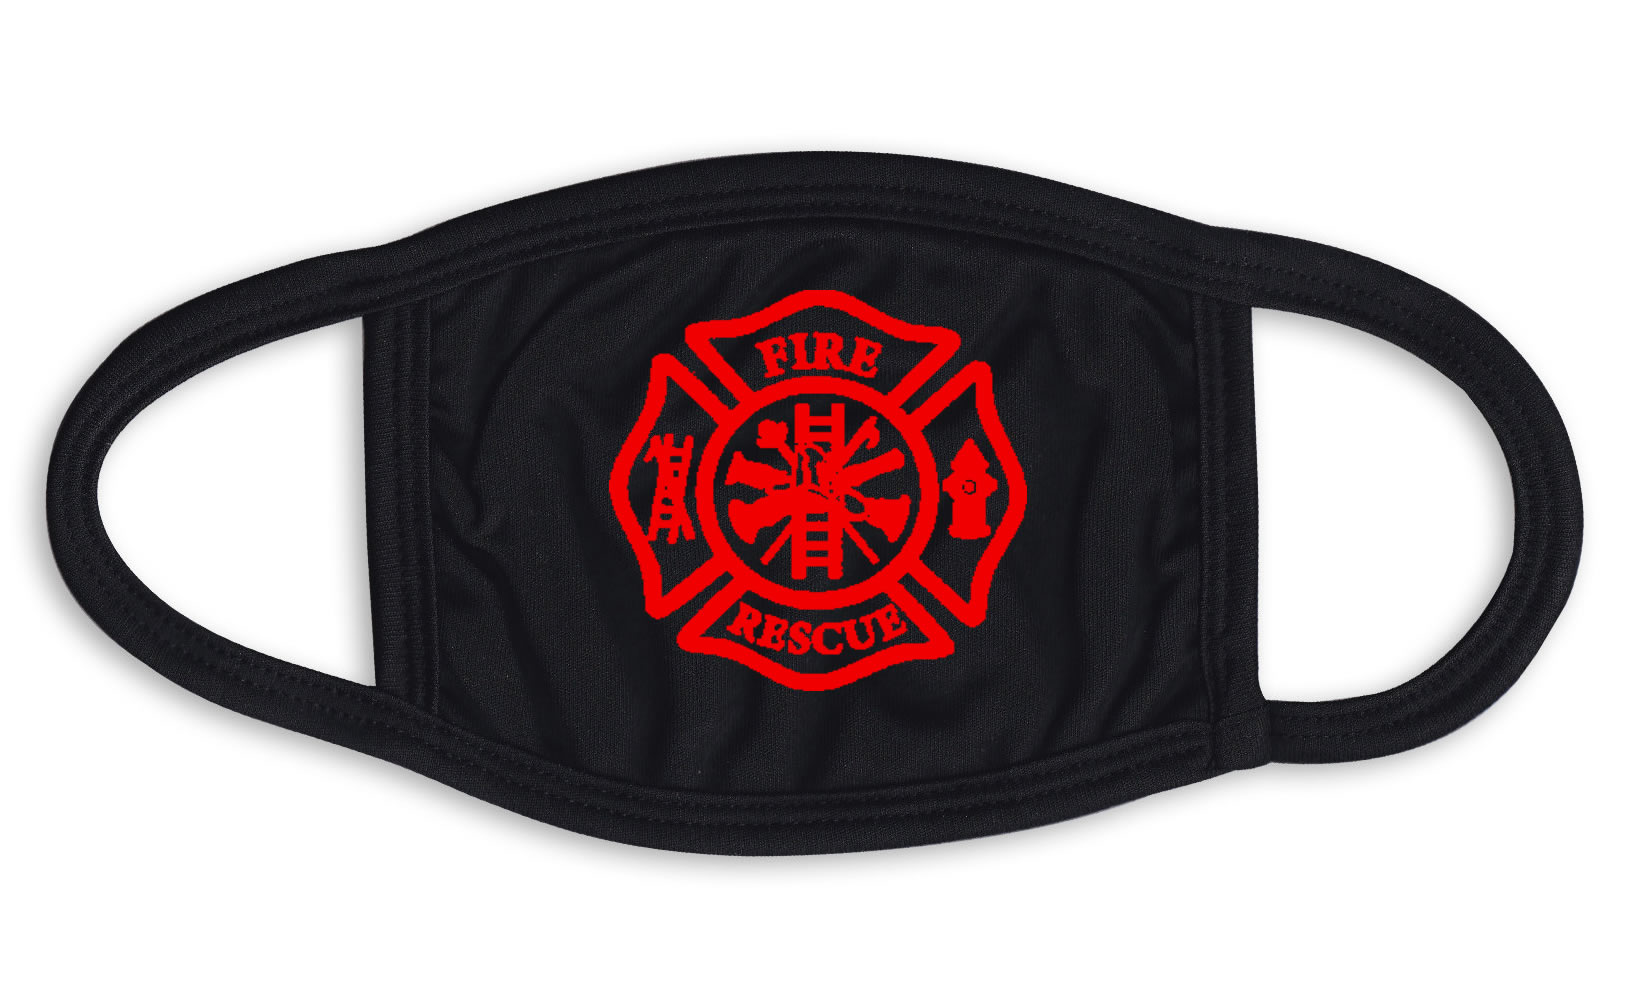 Fire And Rescue Emblem Face Mask